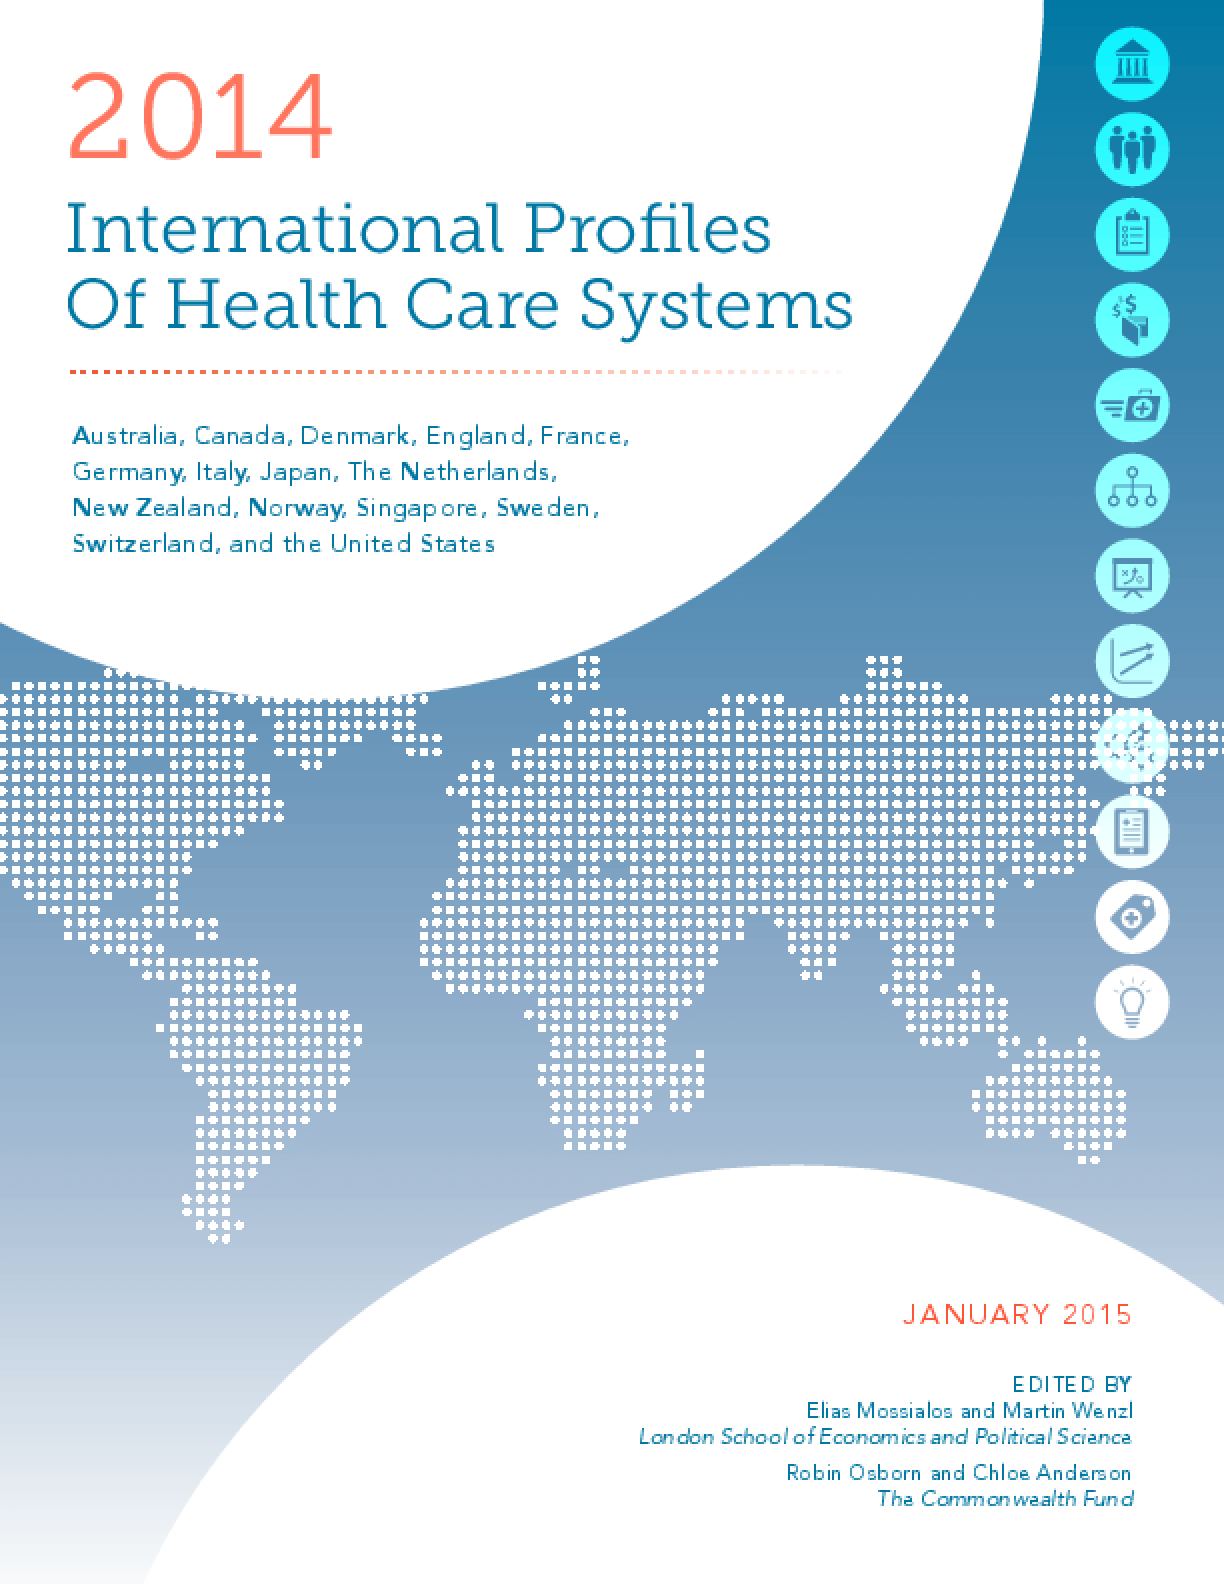 International Profiles of Health Care Systems, 2014